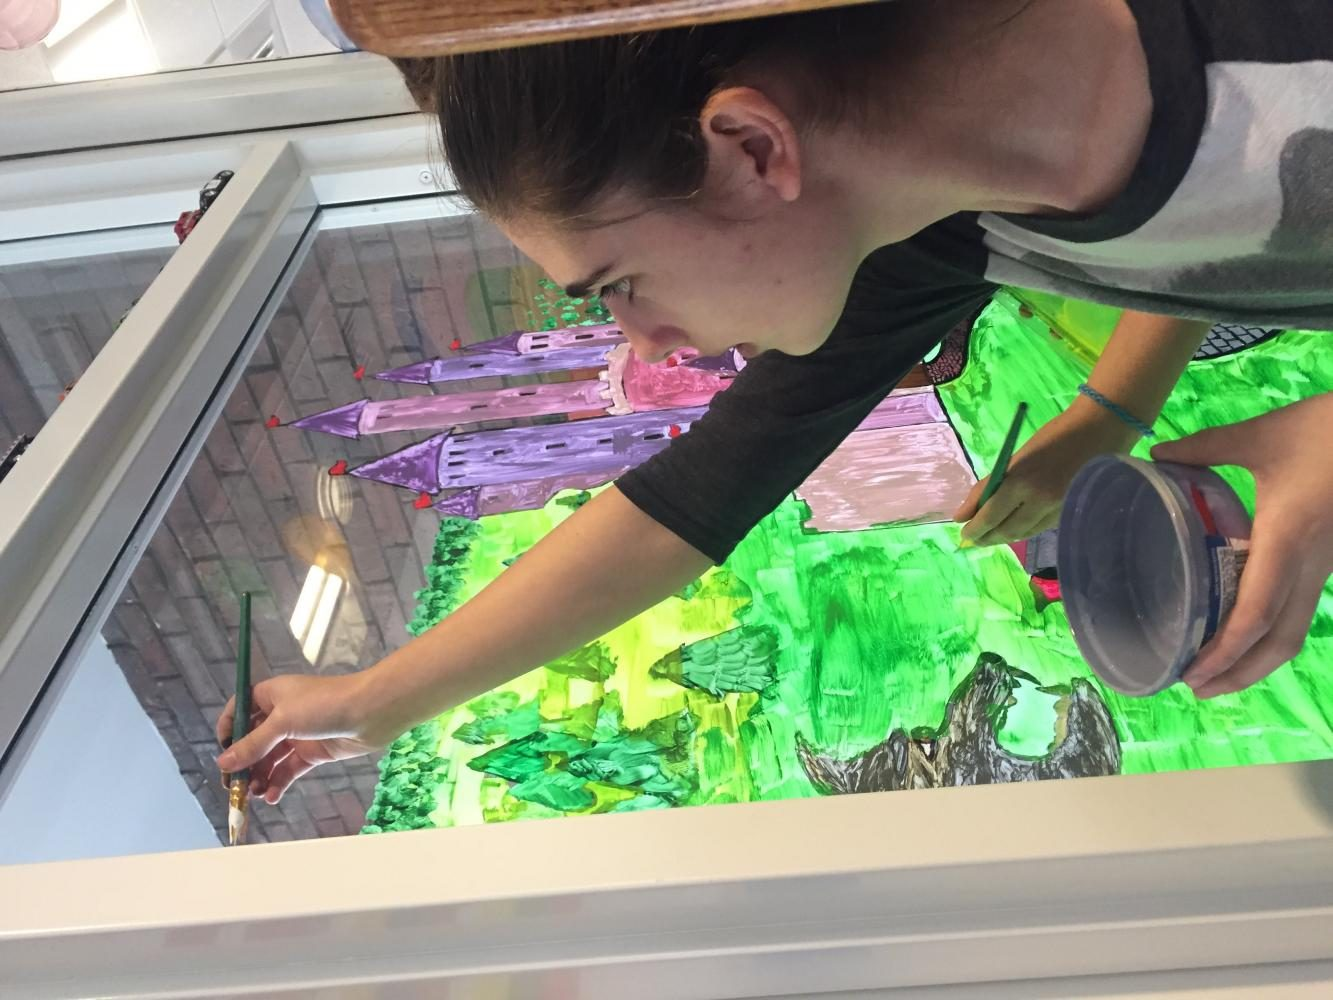 Freshman Gwen Moyer, a member of the art club, helps paint on a mural that the club created last month.